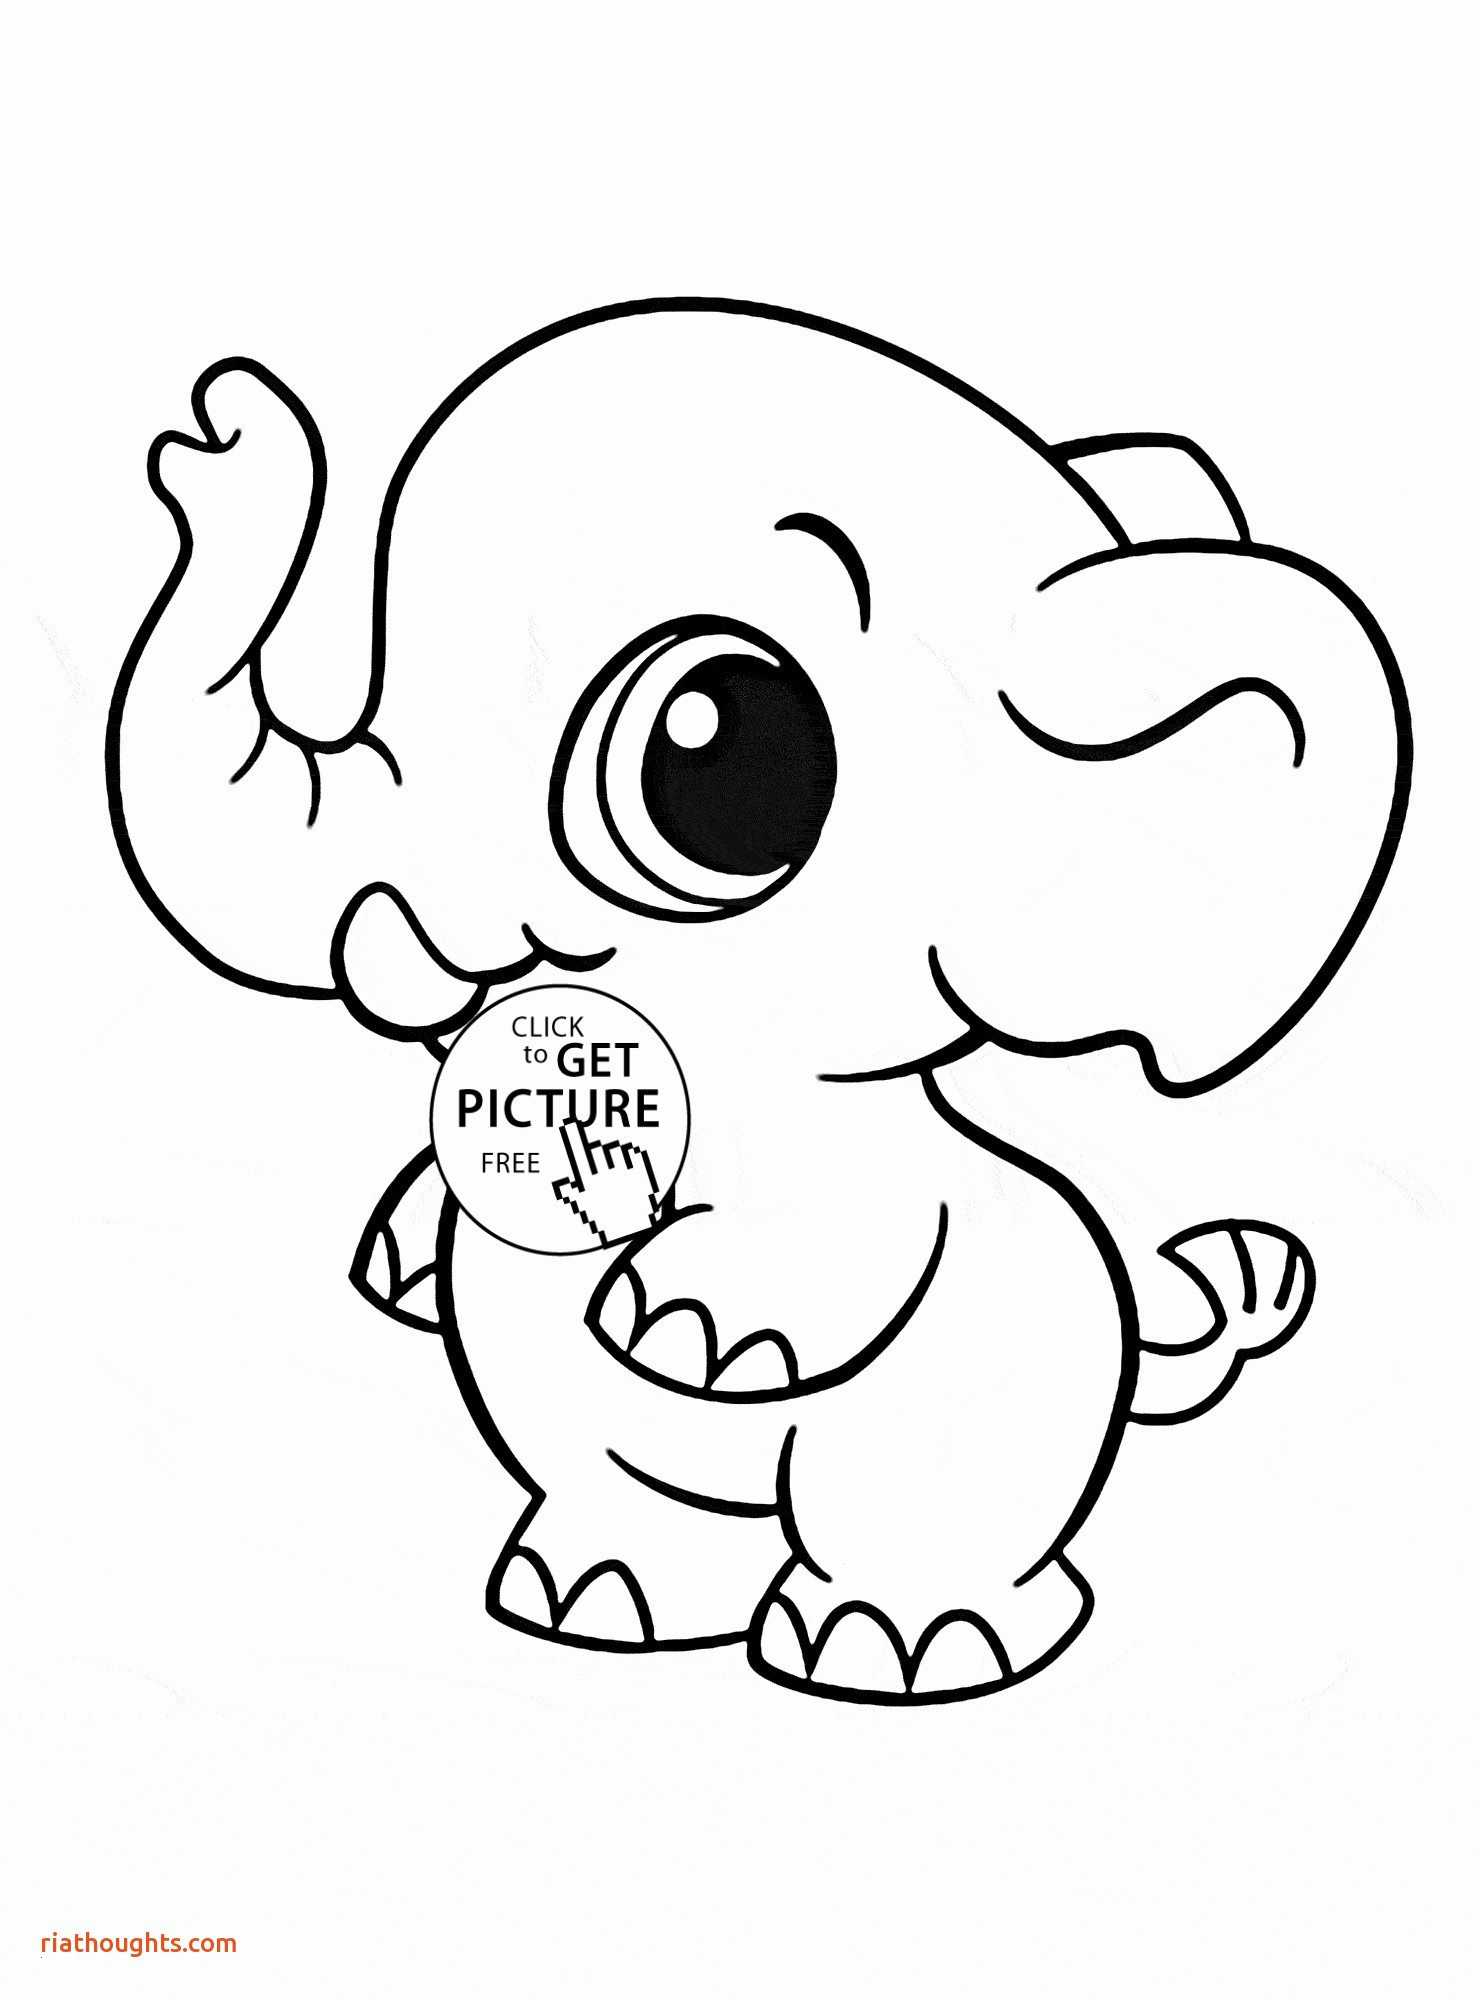 graphic regarding Animals Printable Coloring Pages named 29 Zoo Pets Printable Coloring Internet pages Down load - Coloring